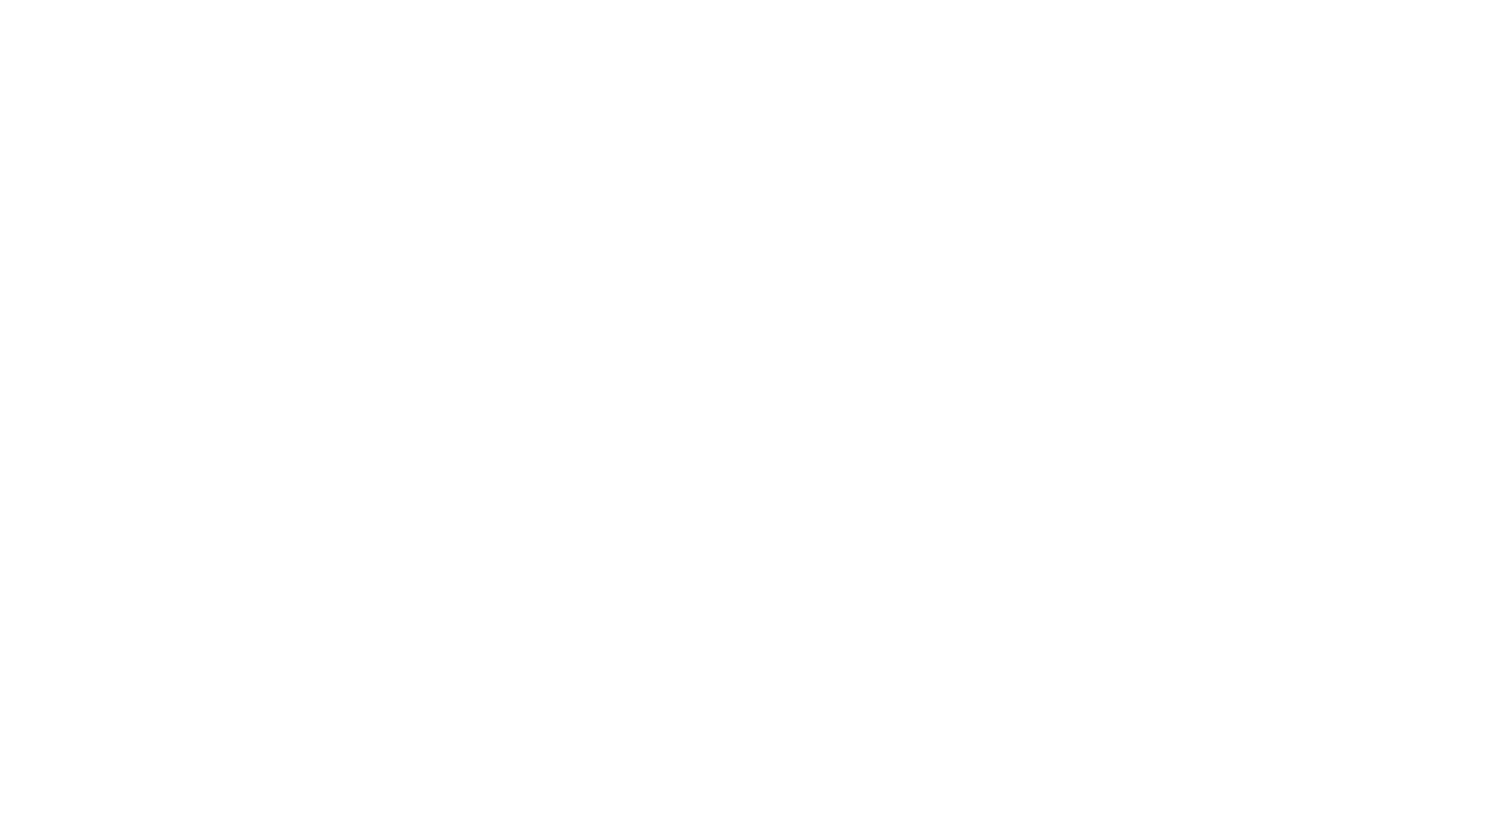 LaMonicas Restaurant Equipment Services